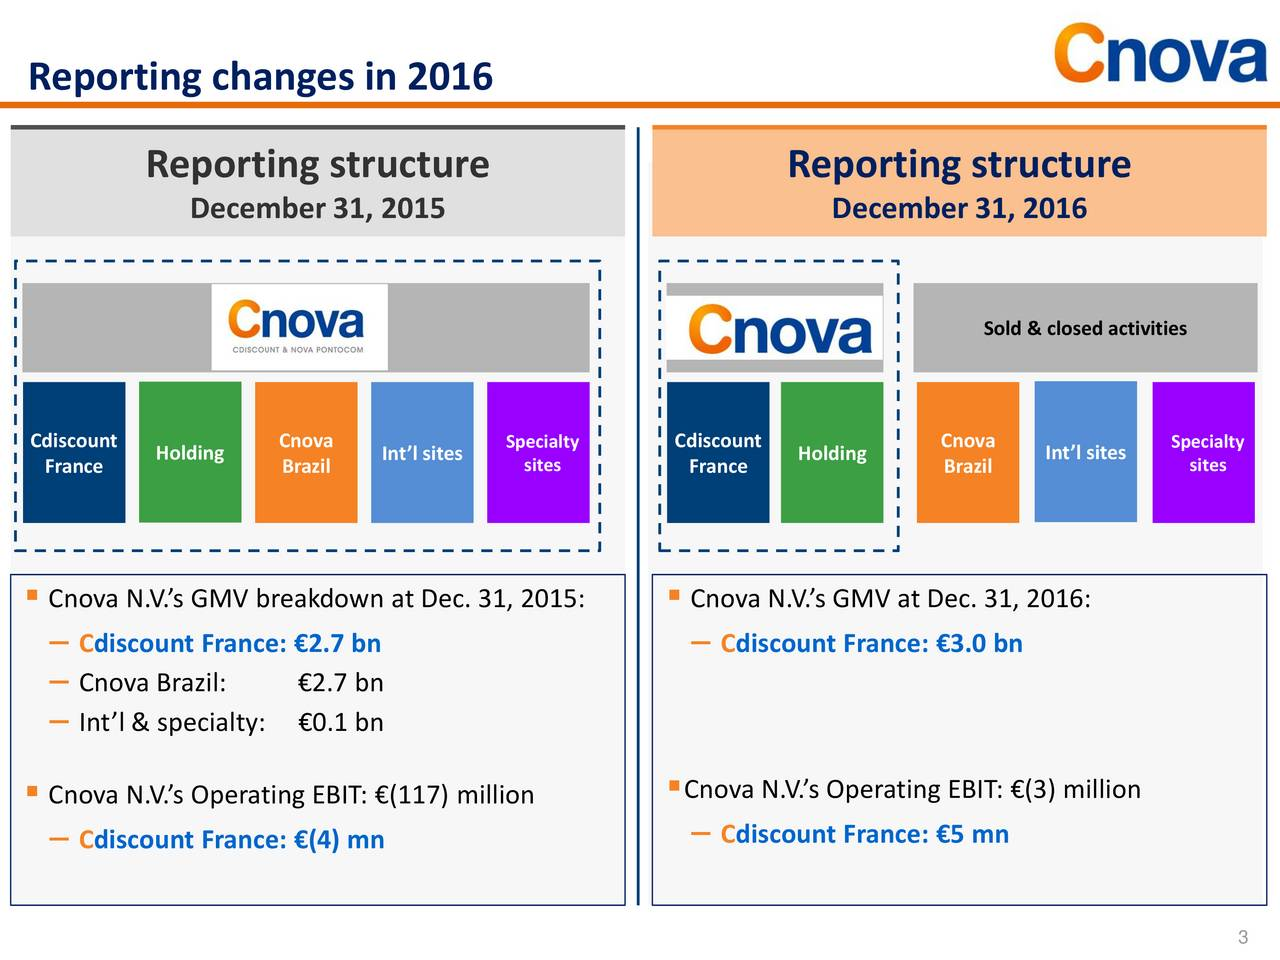 Reporting structure Reporting structure December 31, 2015 December 31, 2016 Cnova N.V. Cnova N.V. Sold & closed activities Cdiscount Cnova Specialty Cdiscount Cnova Specialty France Holding Brazil Intl sites sites France Holding Brazil Intl sites sites Cnova N.V.s GMV breakdown at Dec. 31, 2015:  Cnova N.V.s GMV at Dec. 31, 2016: Cdiscount France: 2.7 bn  Cdiscount France: 3.0 bn Cnova Brazil: 2.7 bn Intl & specialty:0.1 bn Cnova N.V.s Operating EBIT: (117) million Cnova N.V.s Operating EBIT: (3) million Cdiscount France: (4) mn  Cdiscount France: 5 mn 3